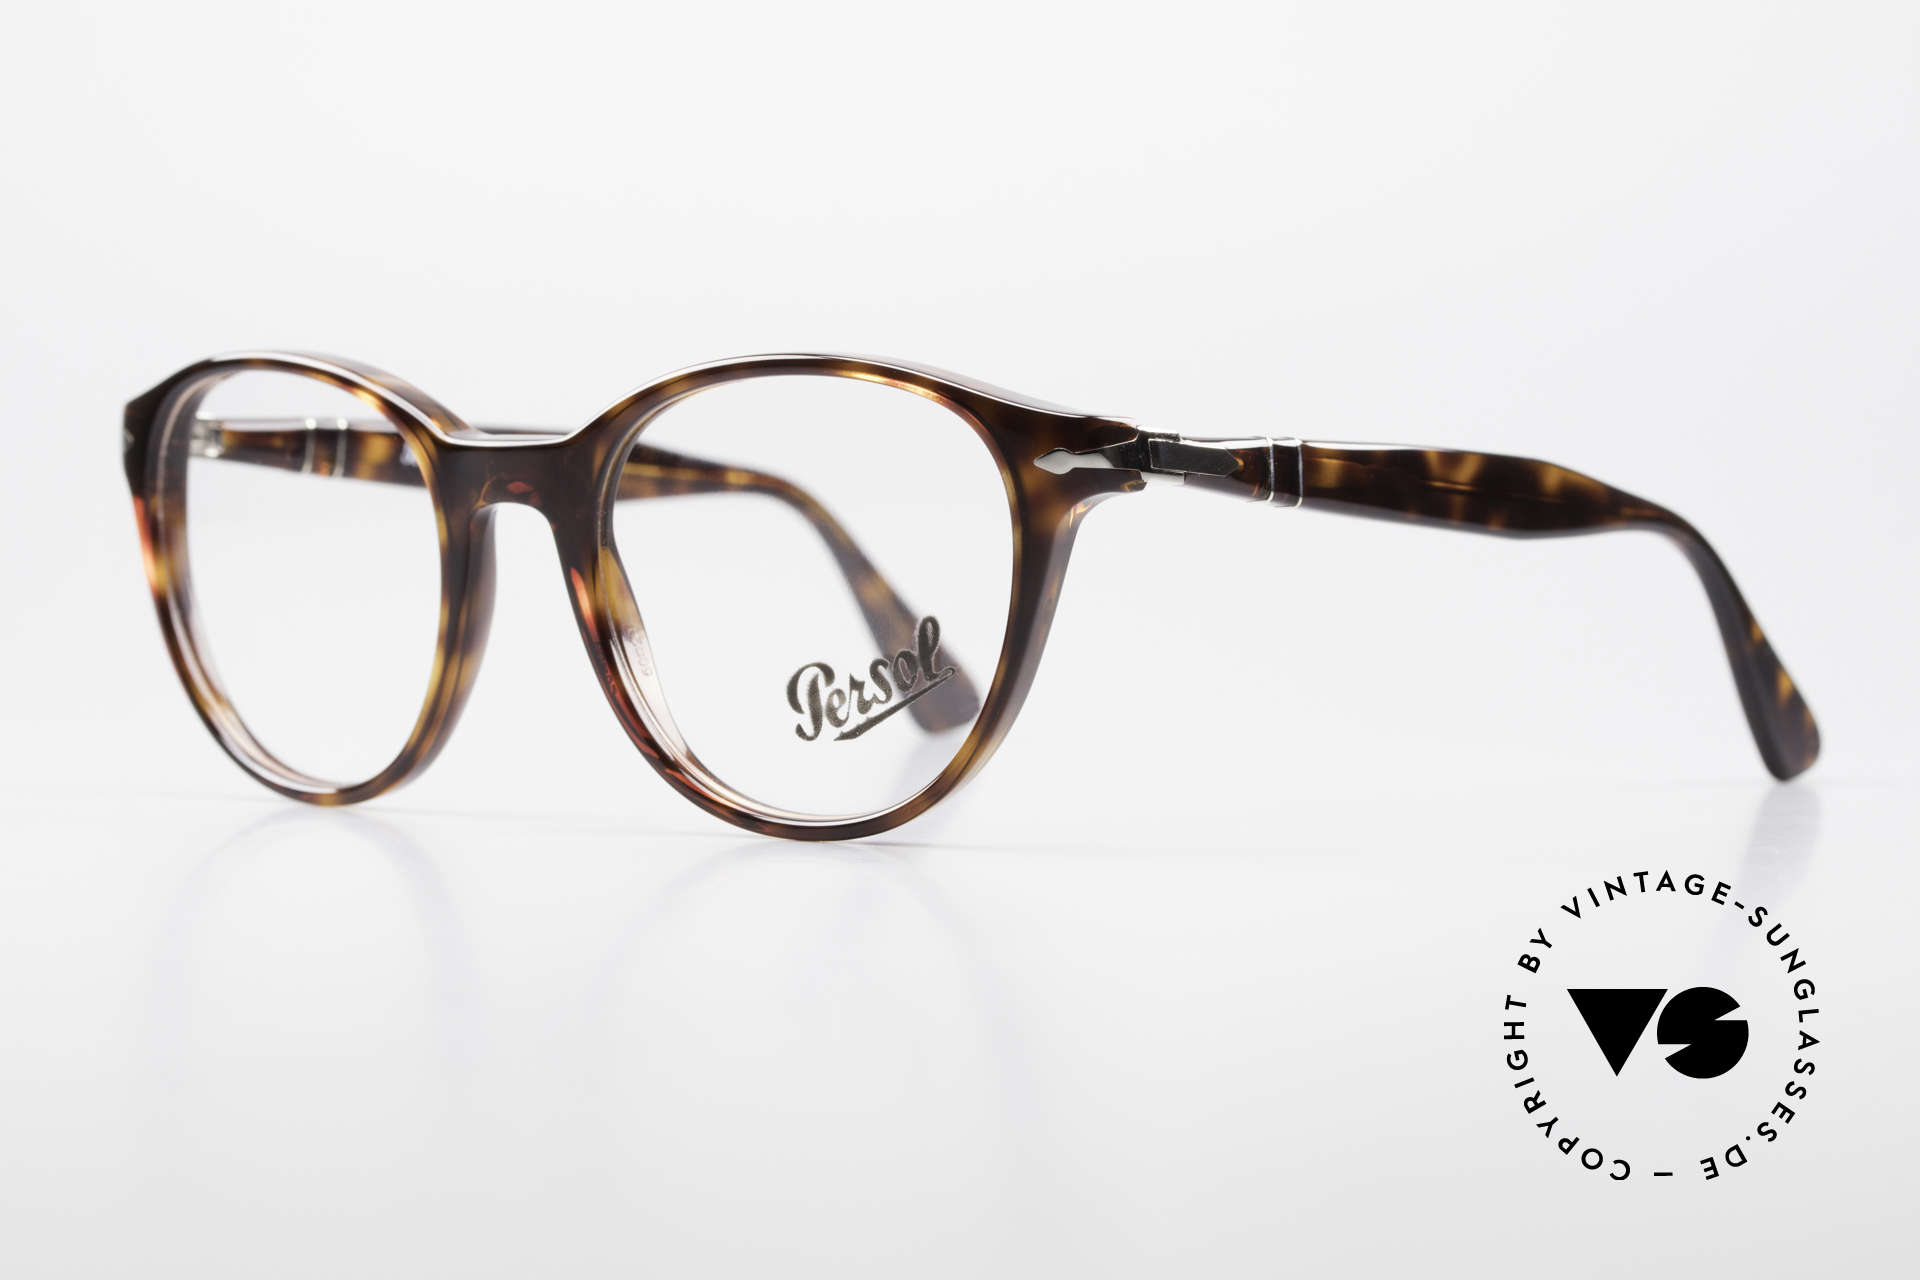 Persol 3153 Timeless Panto Unisex Frame, classic timeless design & flexible spring hinges, Made for Men and Women